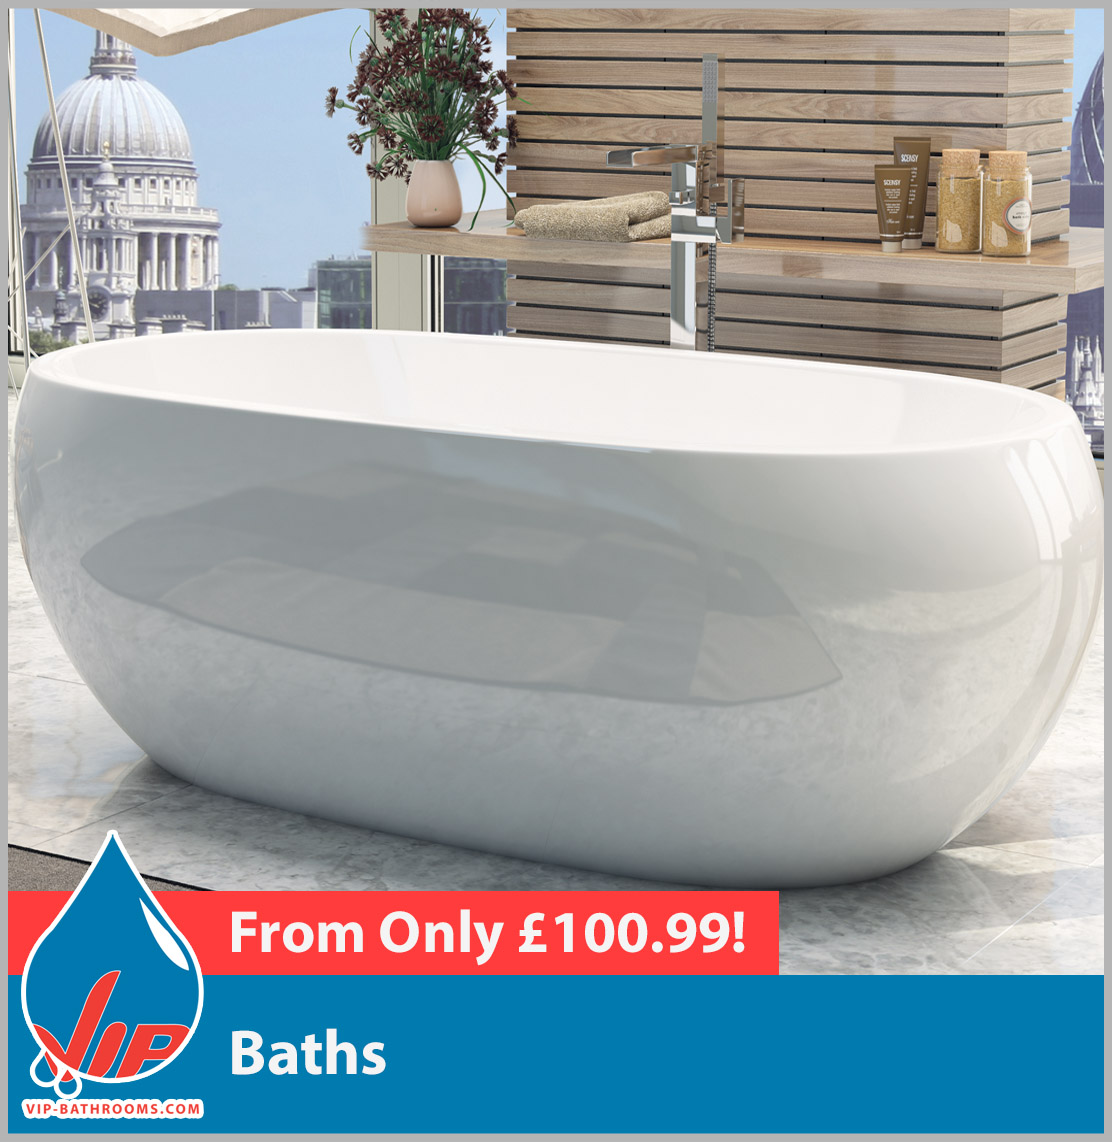 Click here for our stunning range of designer baths